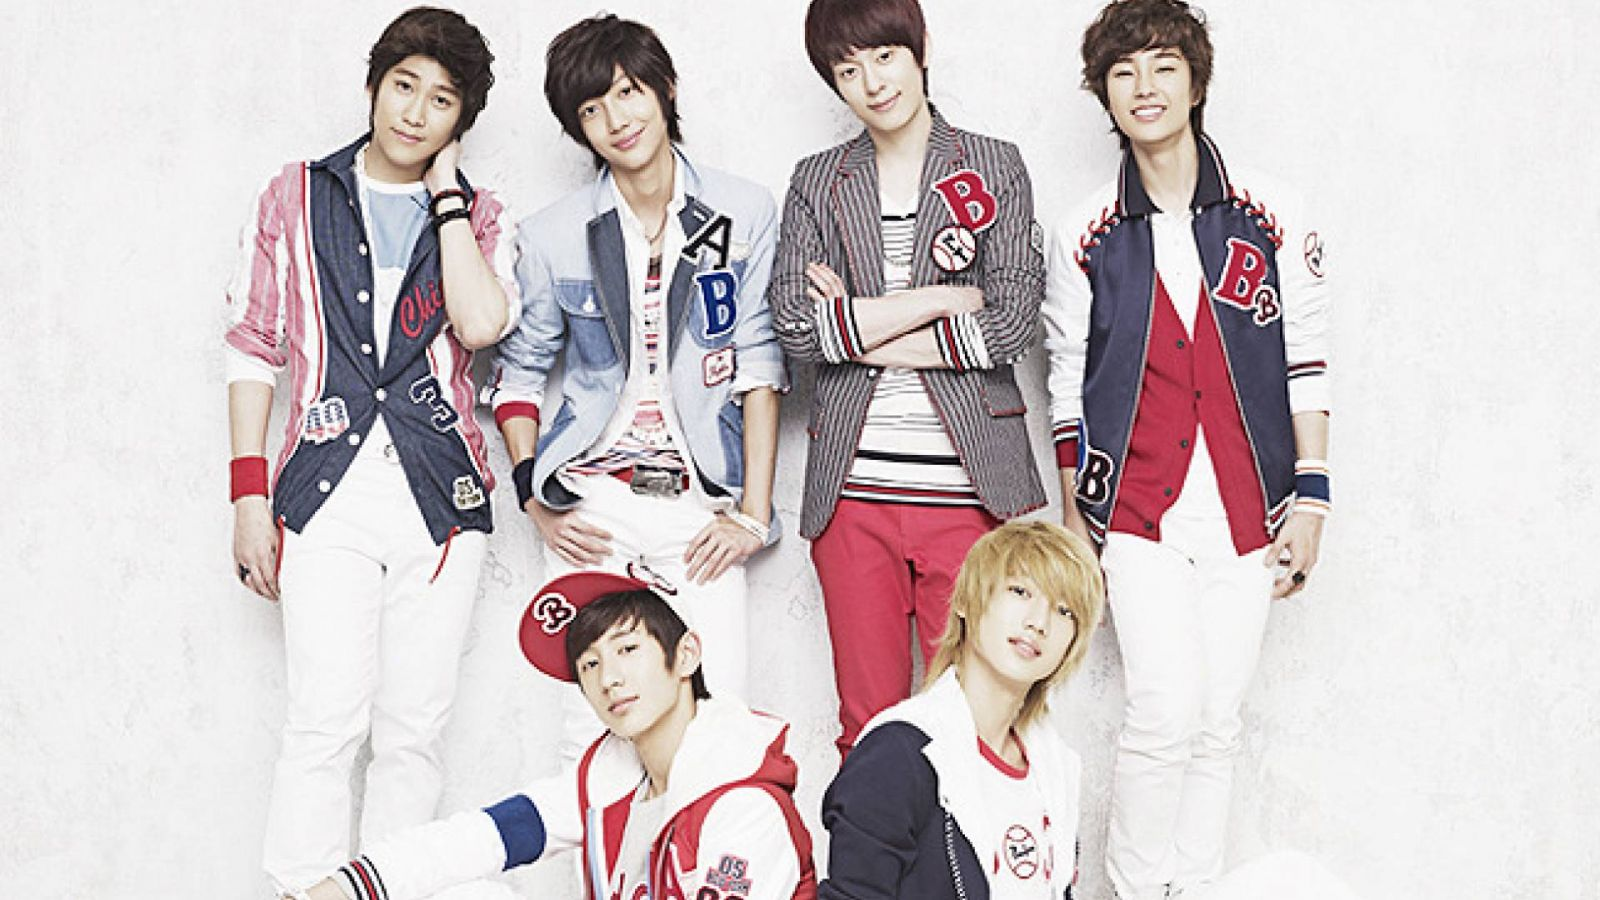 Boyfriend - Boyfriend © Starship Entertainment